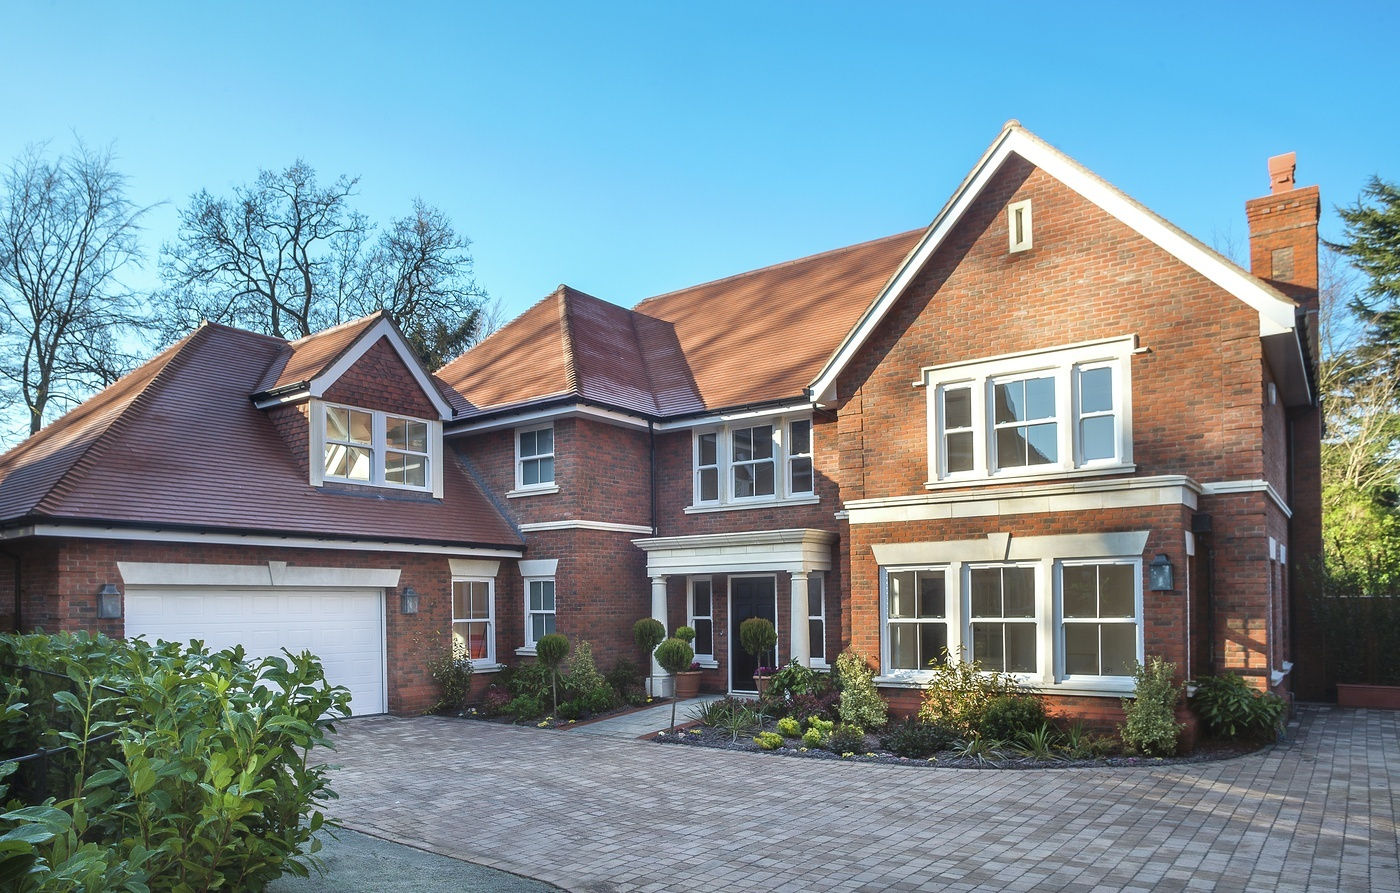 Surrey sales success luxury family homes snapped up in record time millgate - Houses for families withchild ...